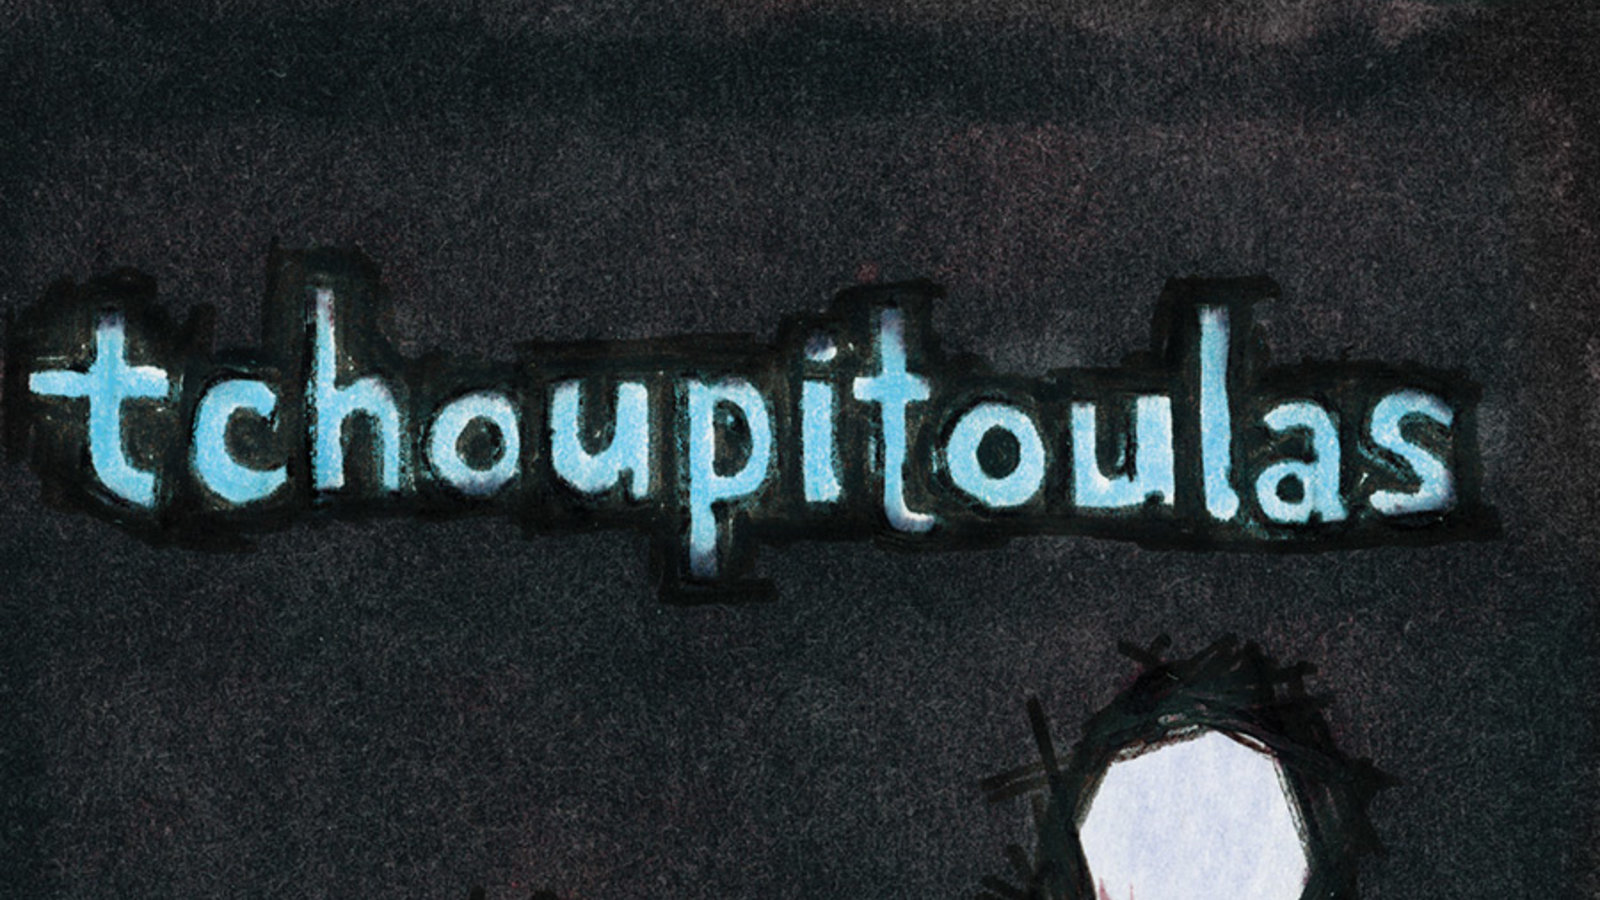 Tchoupitoulas - A Portrait of New Orleans